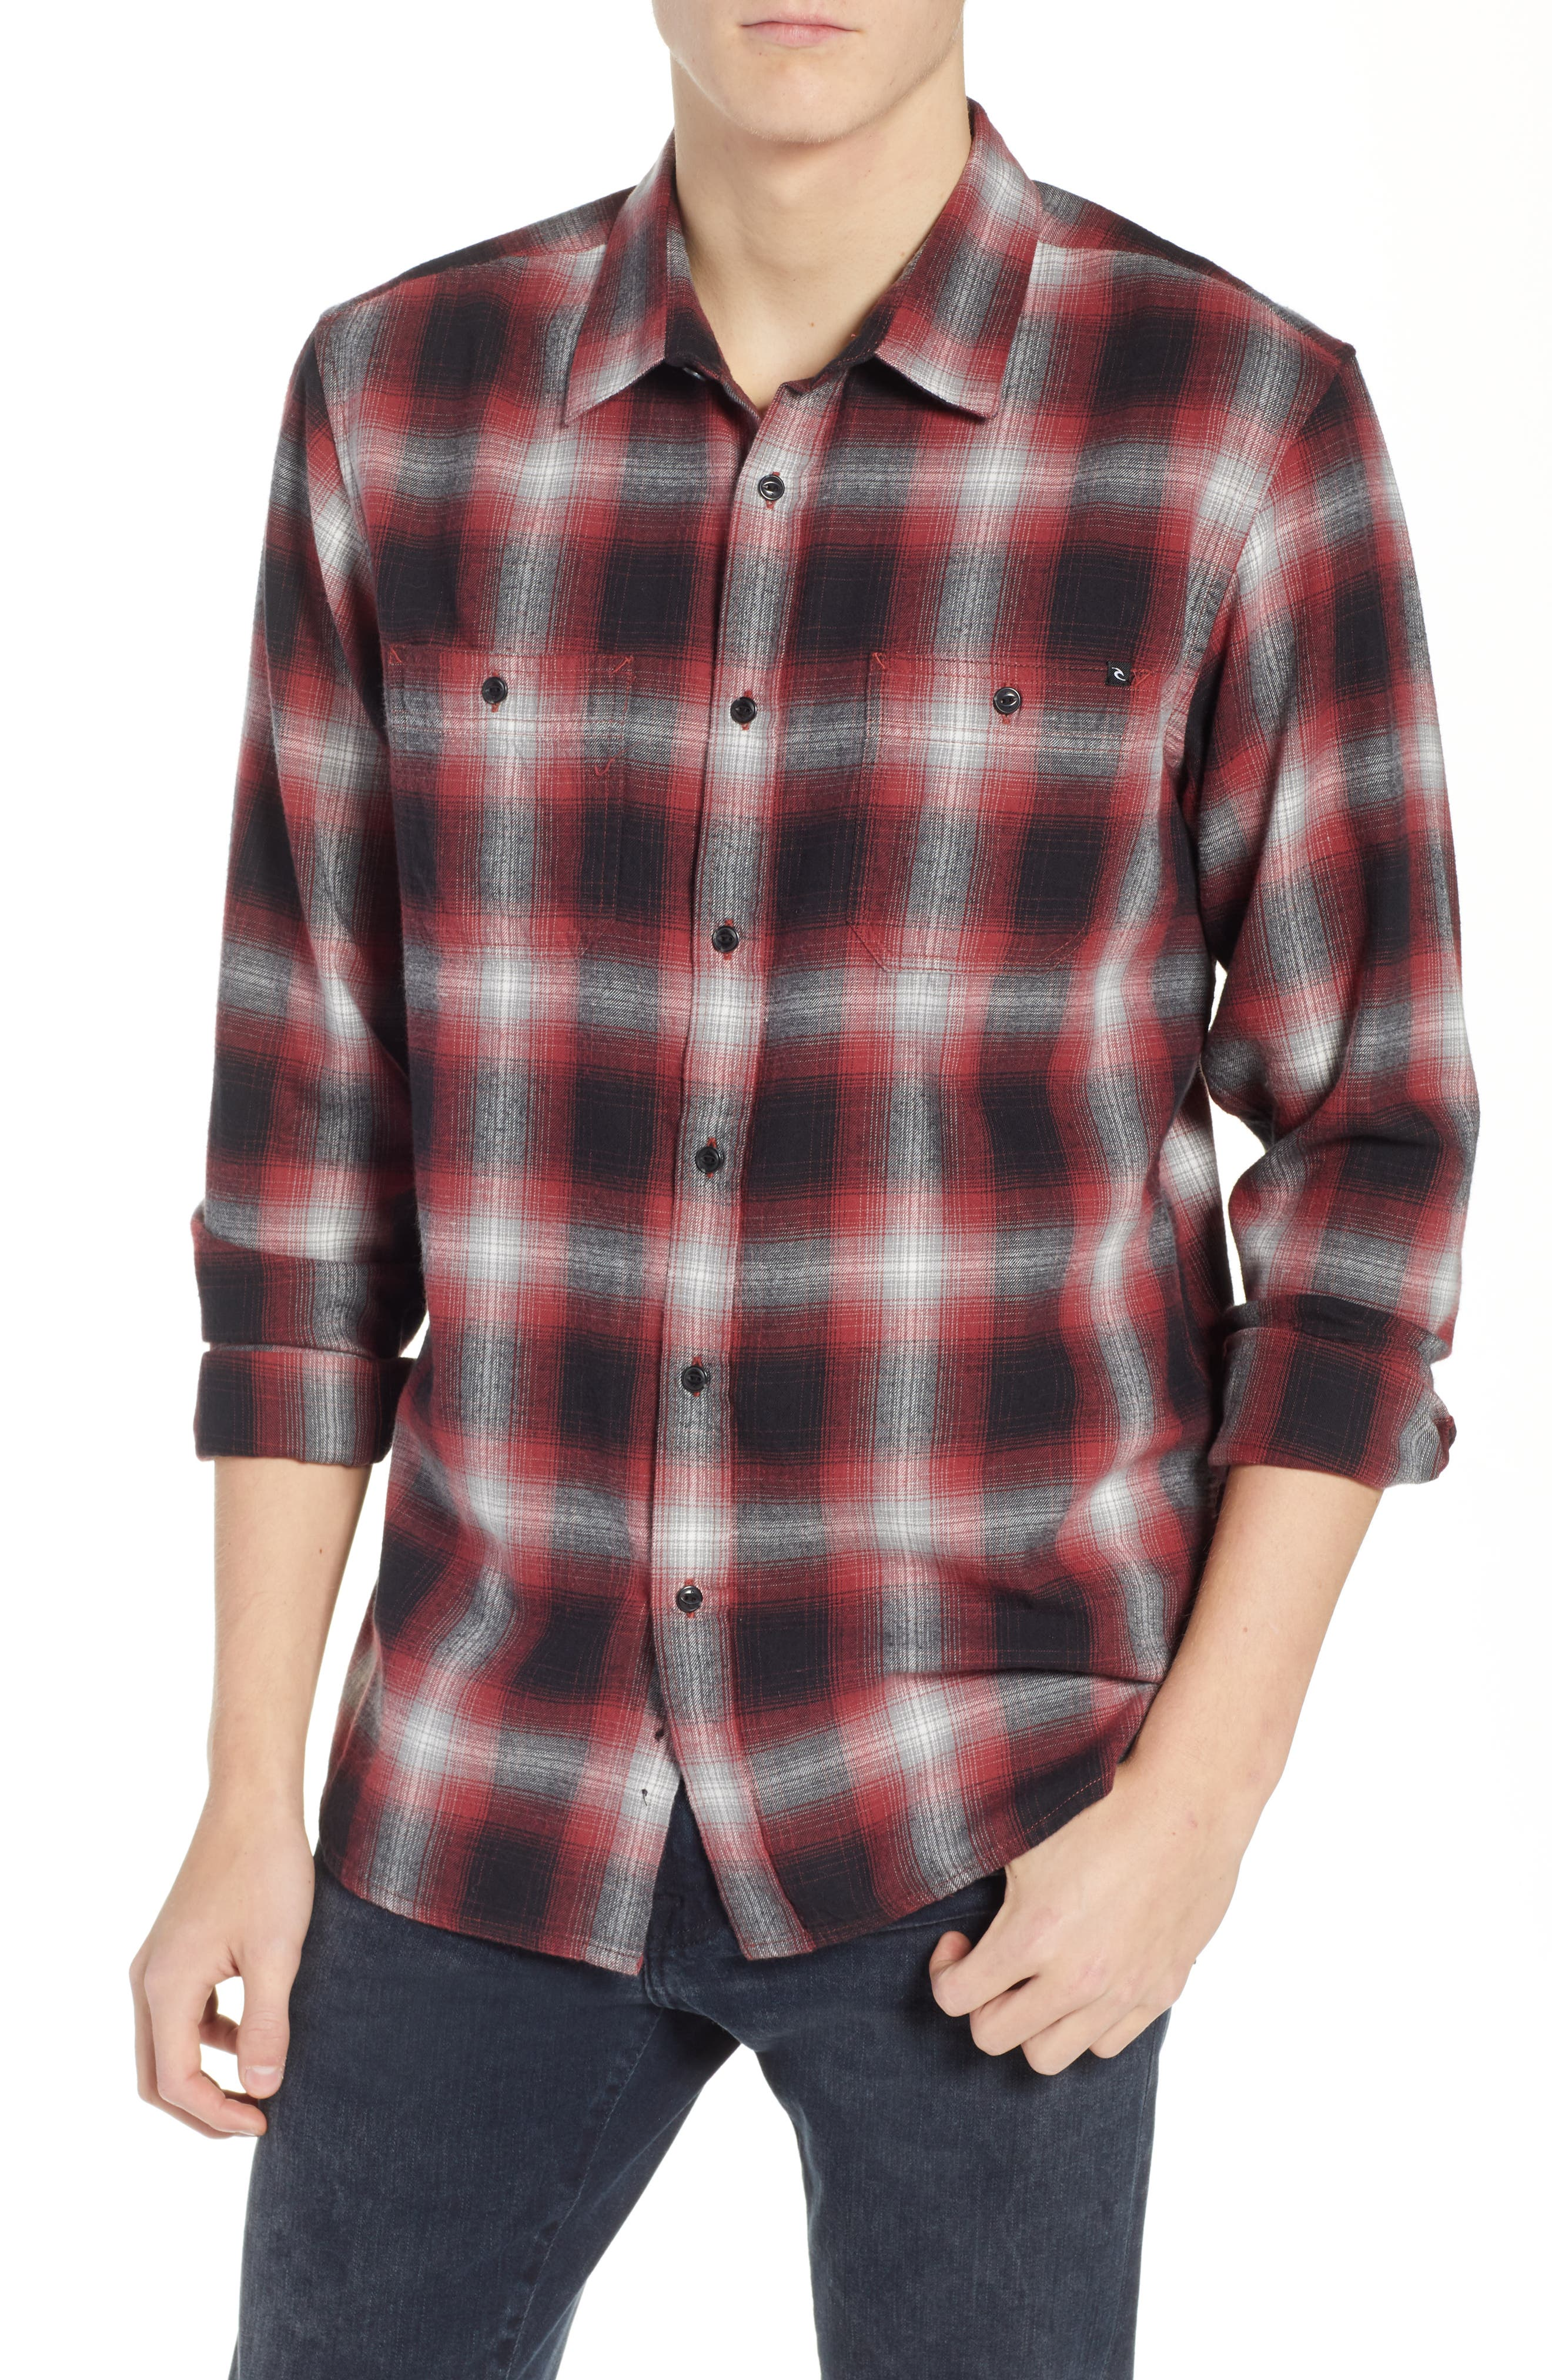 Rip Curl Avilan Flannel Shirt, Red